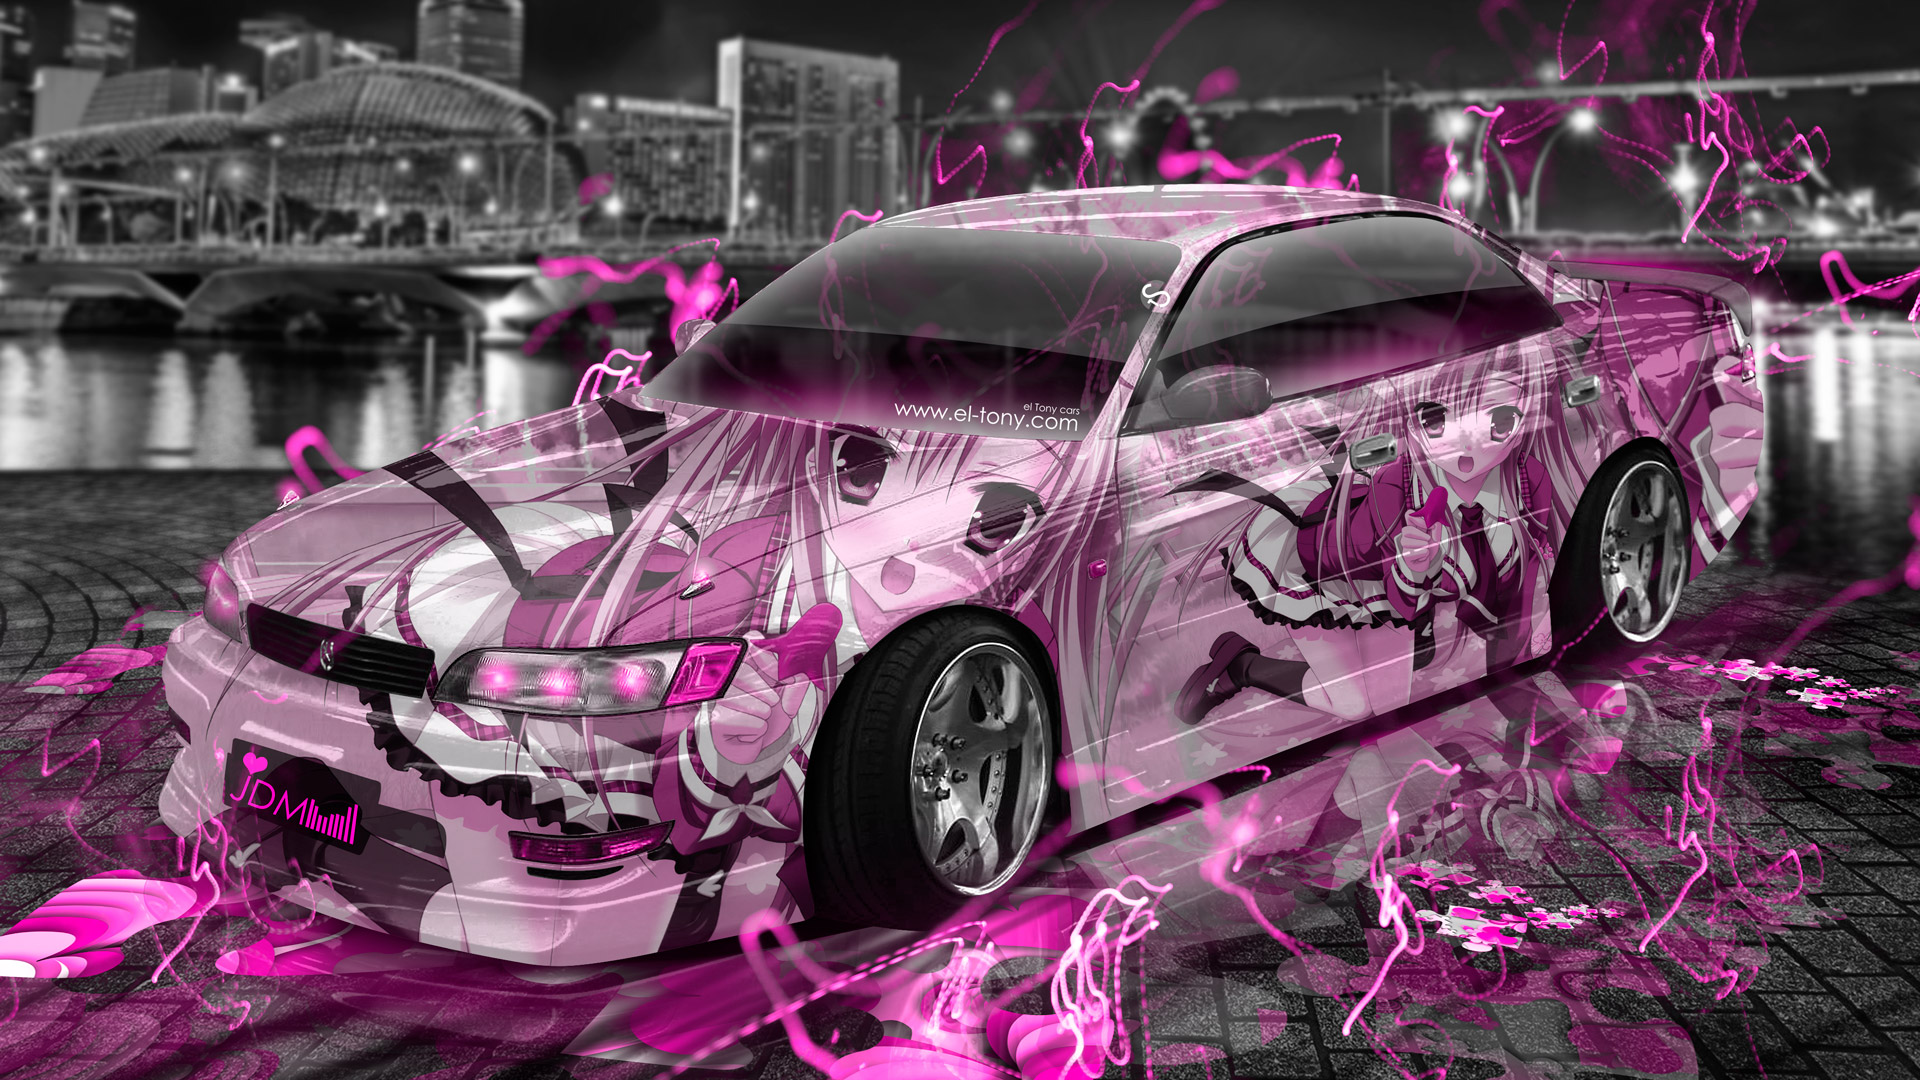 Girls Wallpapers 2015: Toyota Mark2 JZX90 JDM Tuning Anime Aerography City Car